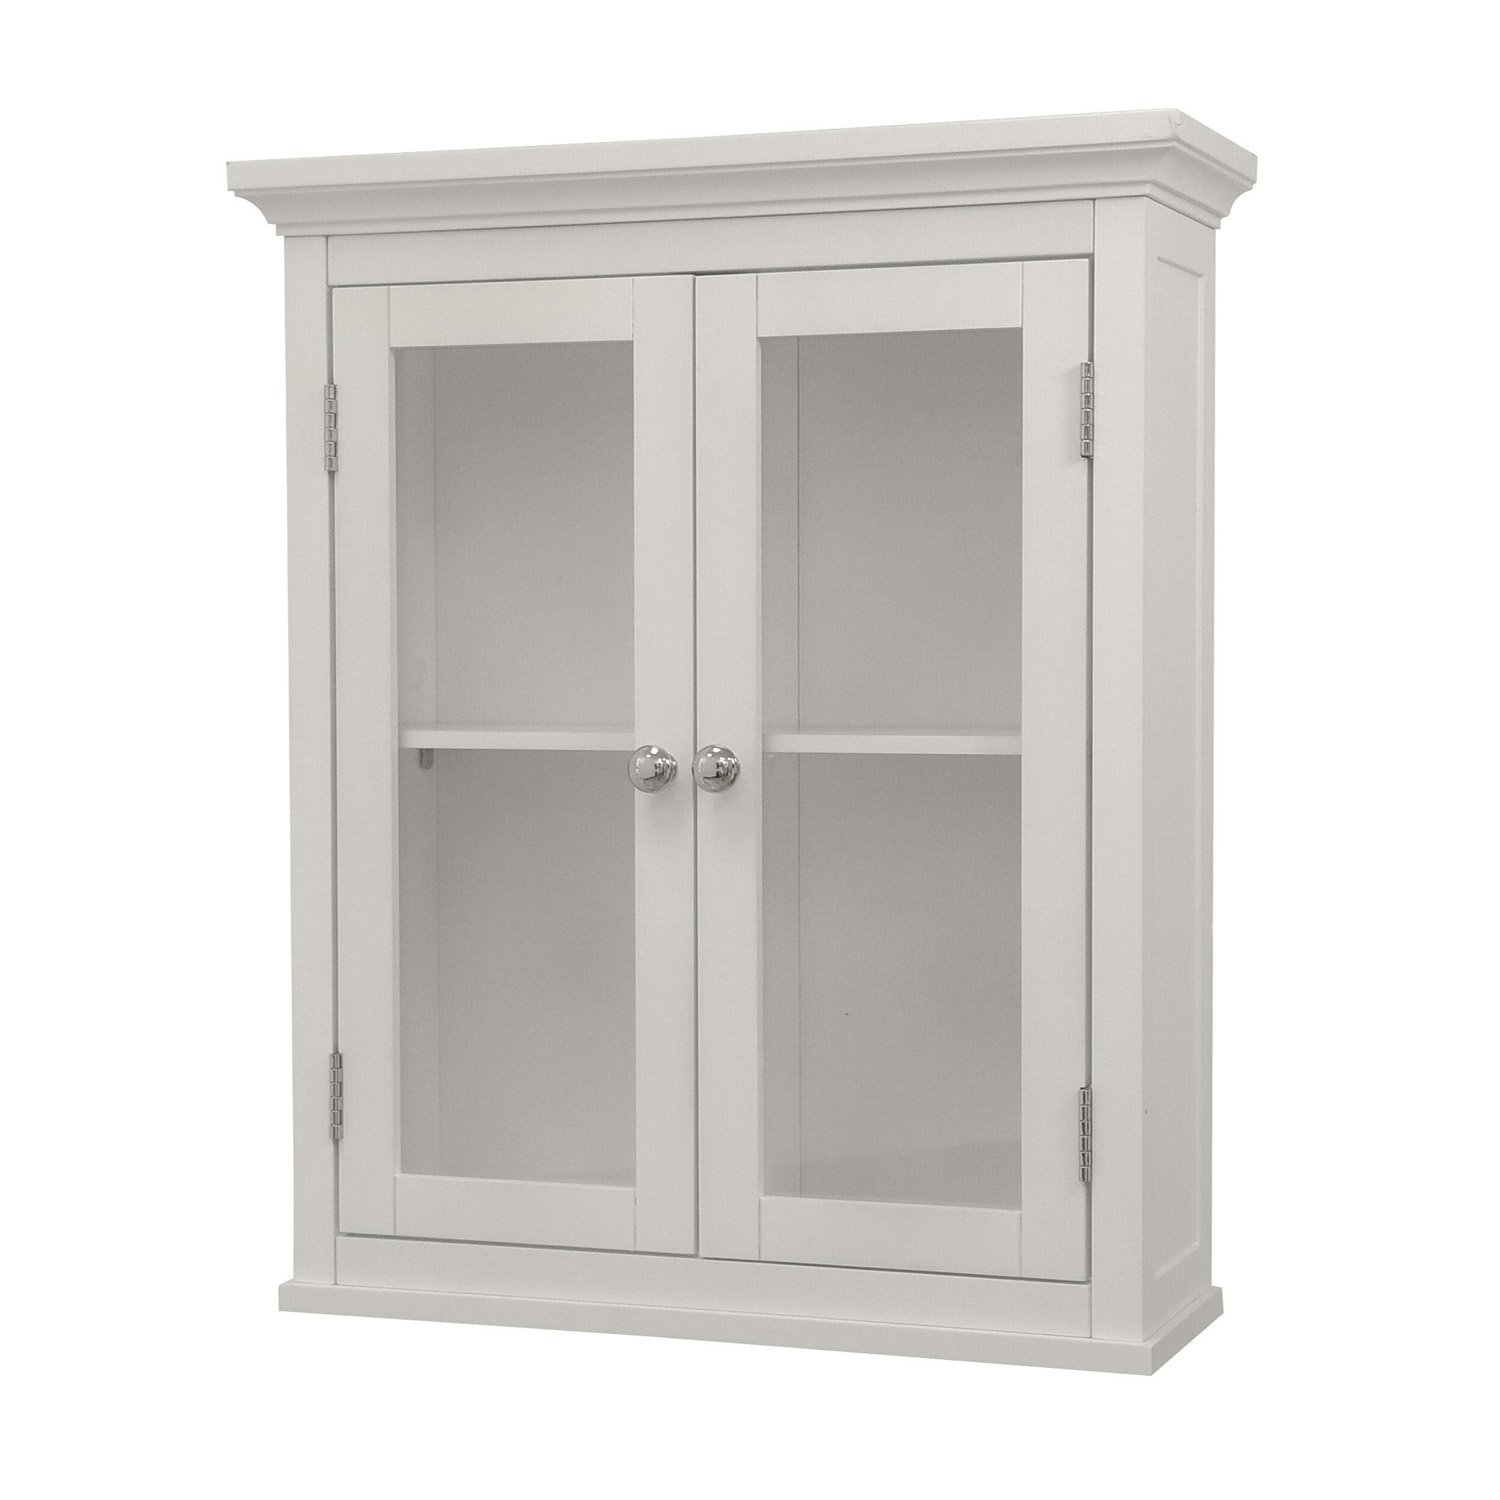 Bathroom wall cabinet white - Amazon Com Elegant Home Fashions Madison Collection Shelved Wall Cabinet With Glass Paneled Doors White Kitchen Dining